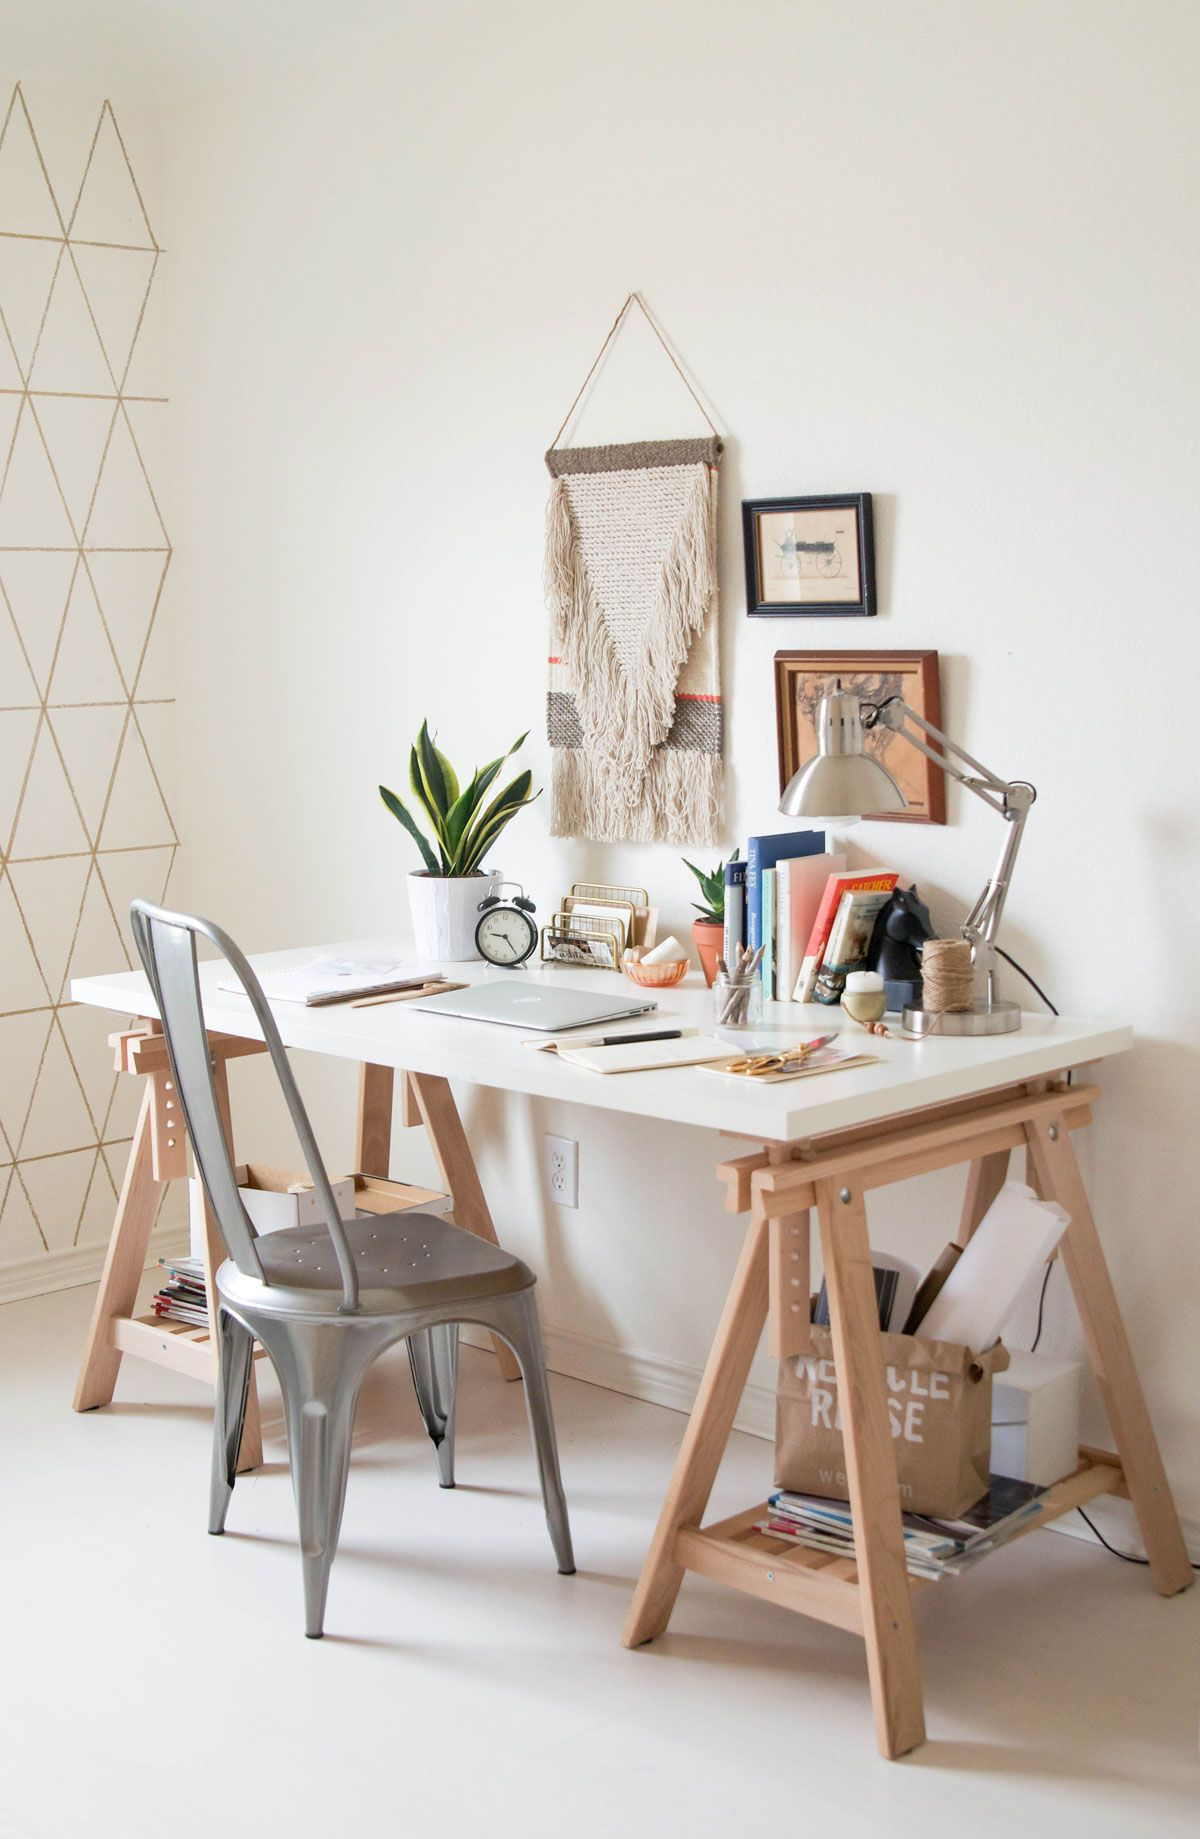 home office styling by ashlee from ashleecreates.com